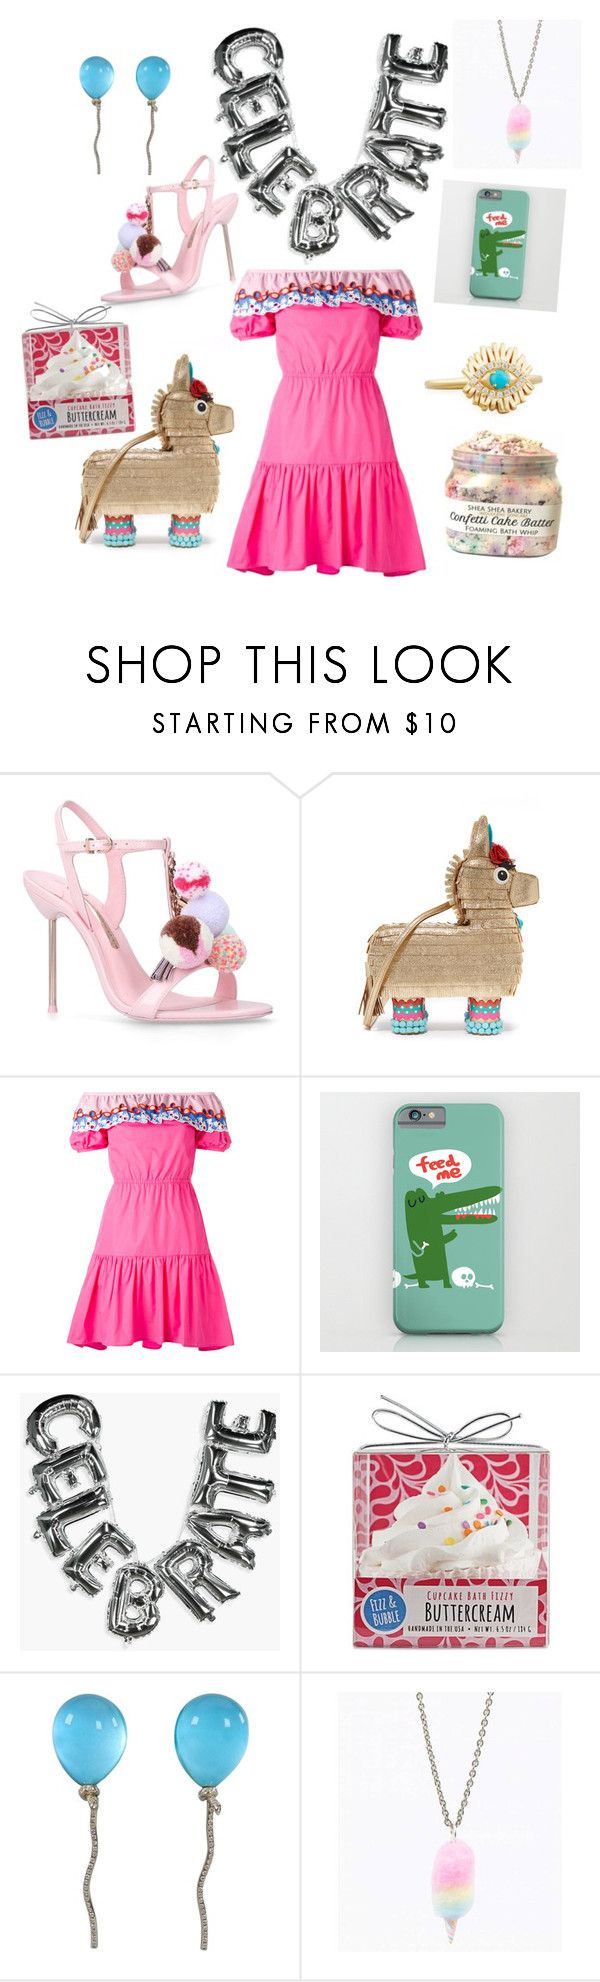 """""""A party pony named Pinky"""" by i-with-inner ❤ liked on Polyvore featuring Sophia Webster, Kate Spade, Peter Pilotto, Boohoo, Fizz & Bubble, Vhernier and Suzanne Kalan"""